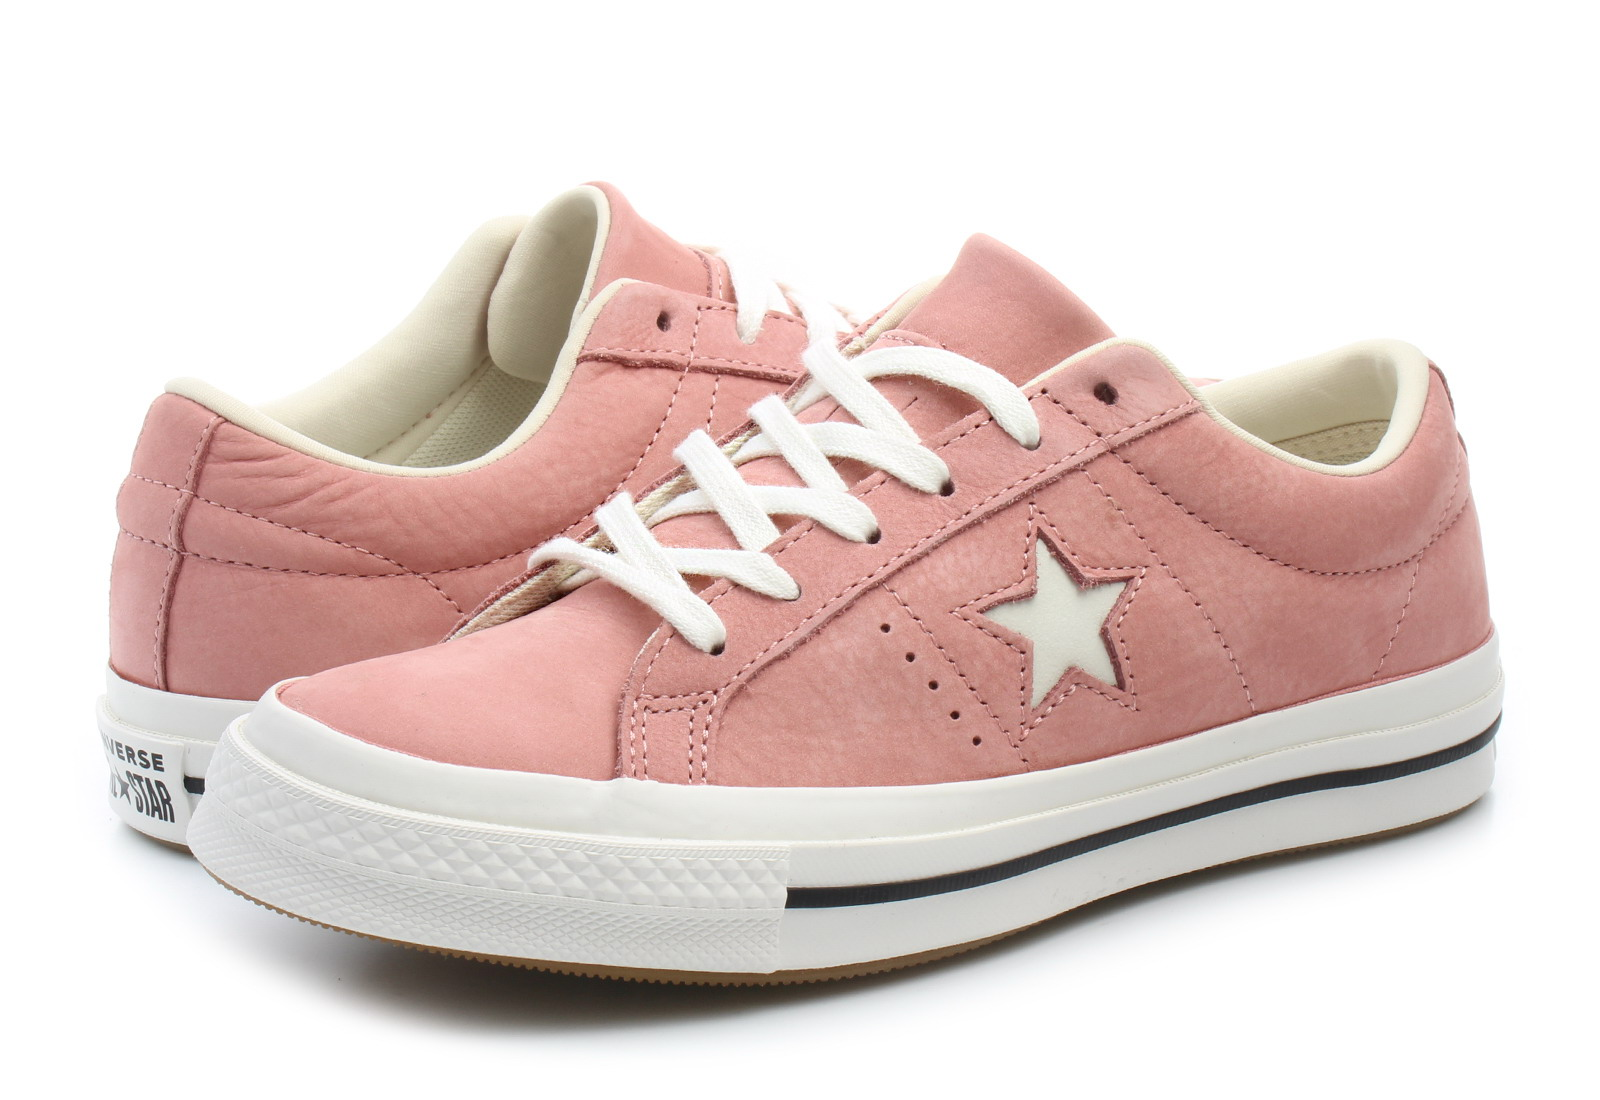 37d7d8cf68 Converse Sneakers - One Star Ox - 161586C - Online shop for ...